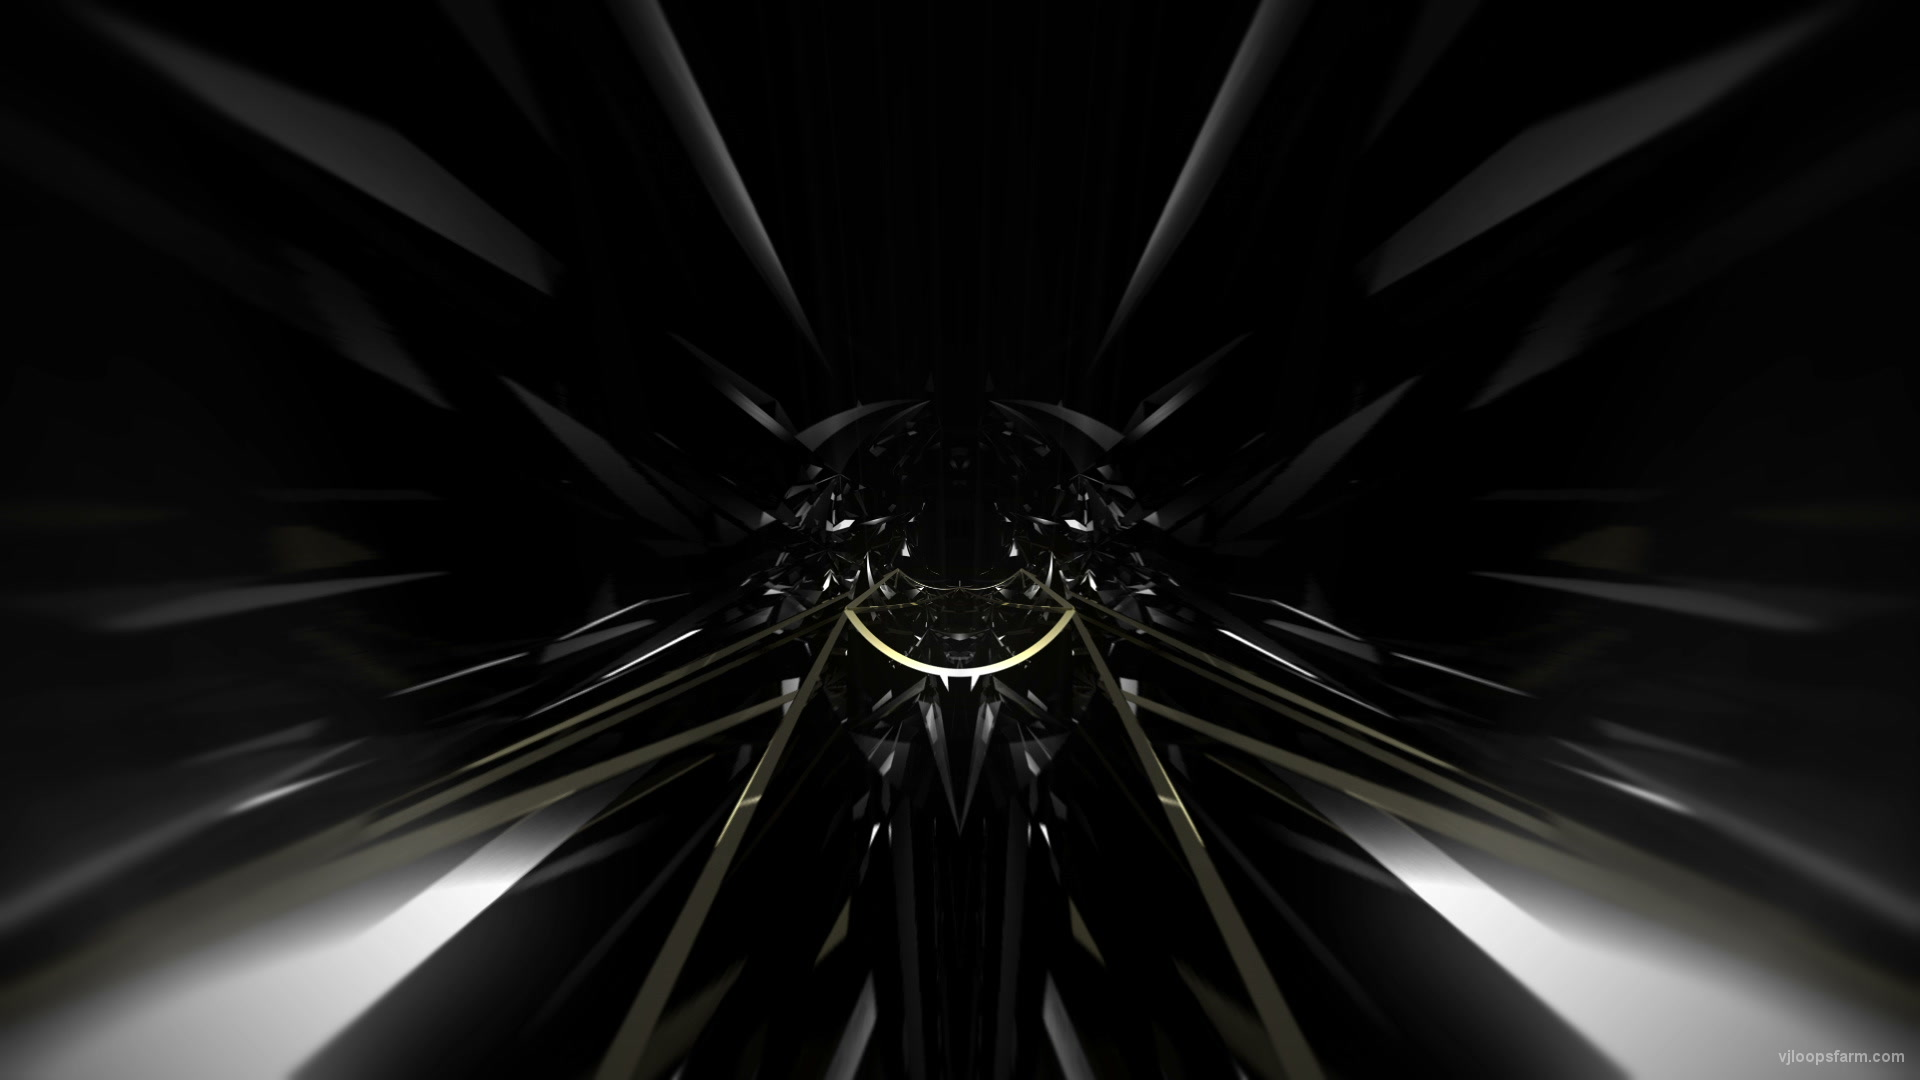 Black Mirror Tunnel Hi Speed Vj Loop Vj Loop Download